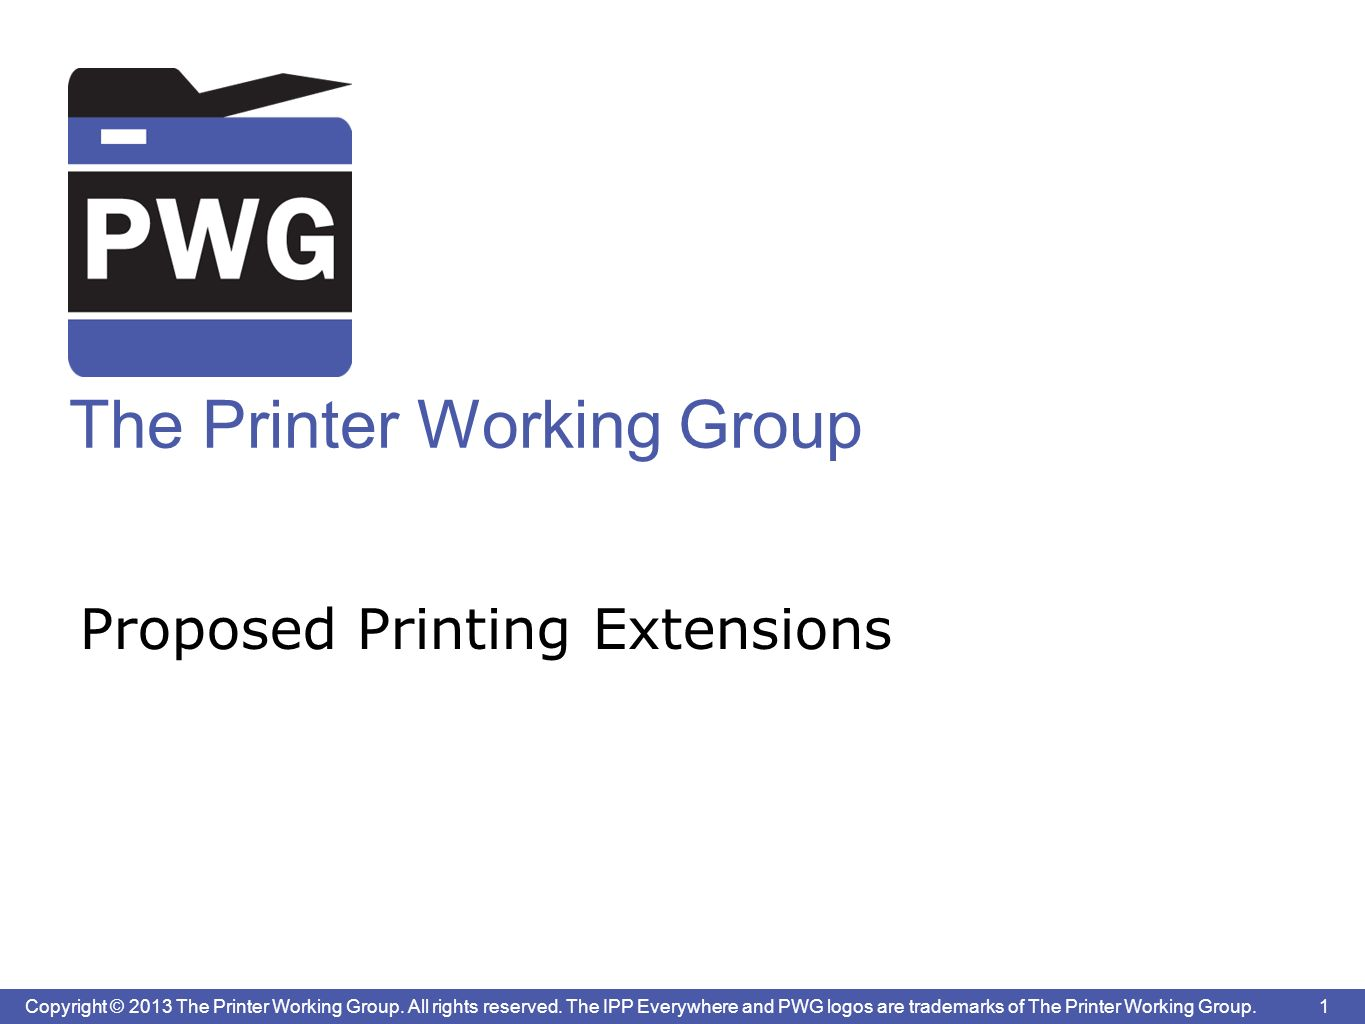 1 Copyright © 2013 The Printer Working Group. All rights reserved.